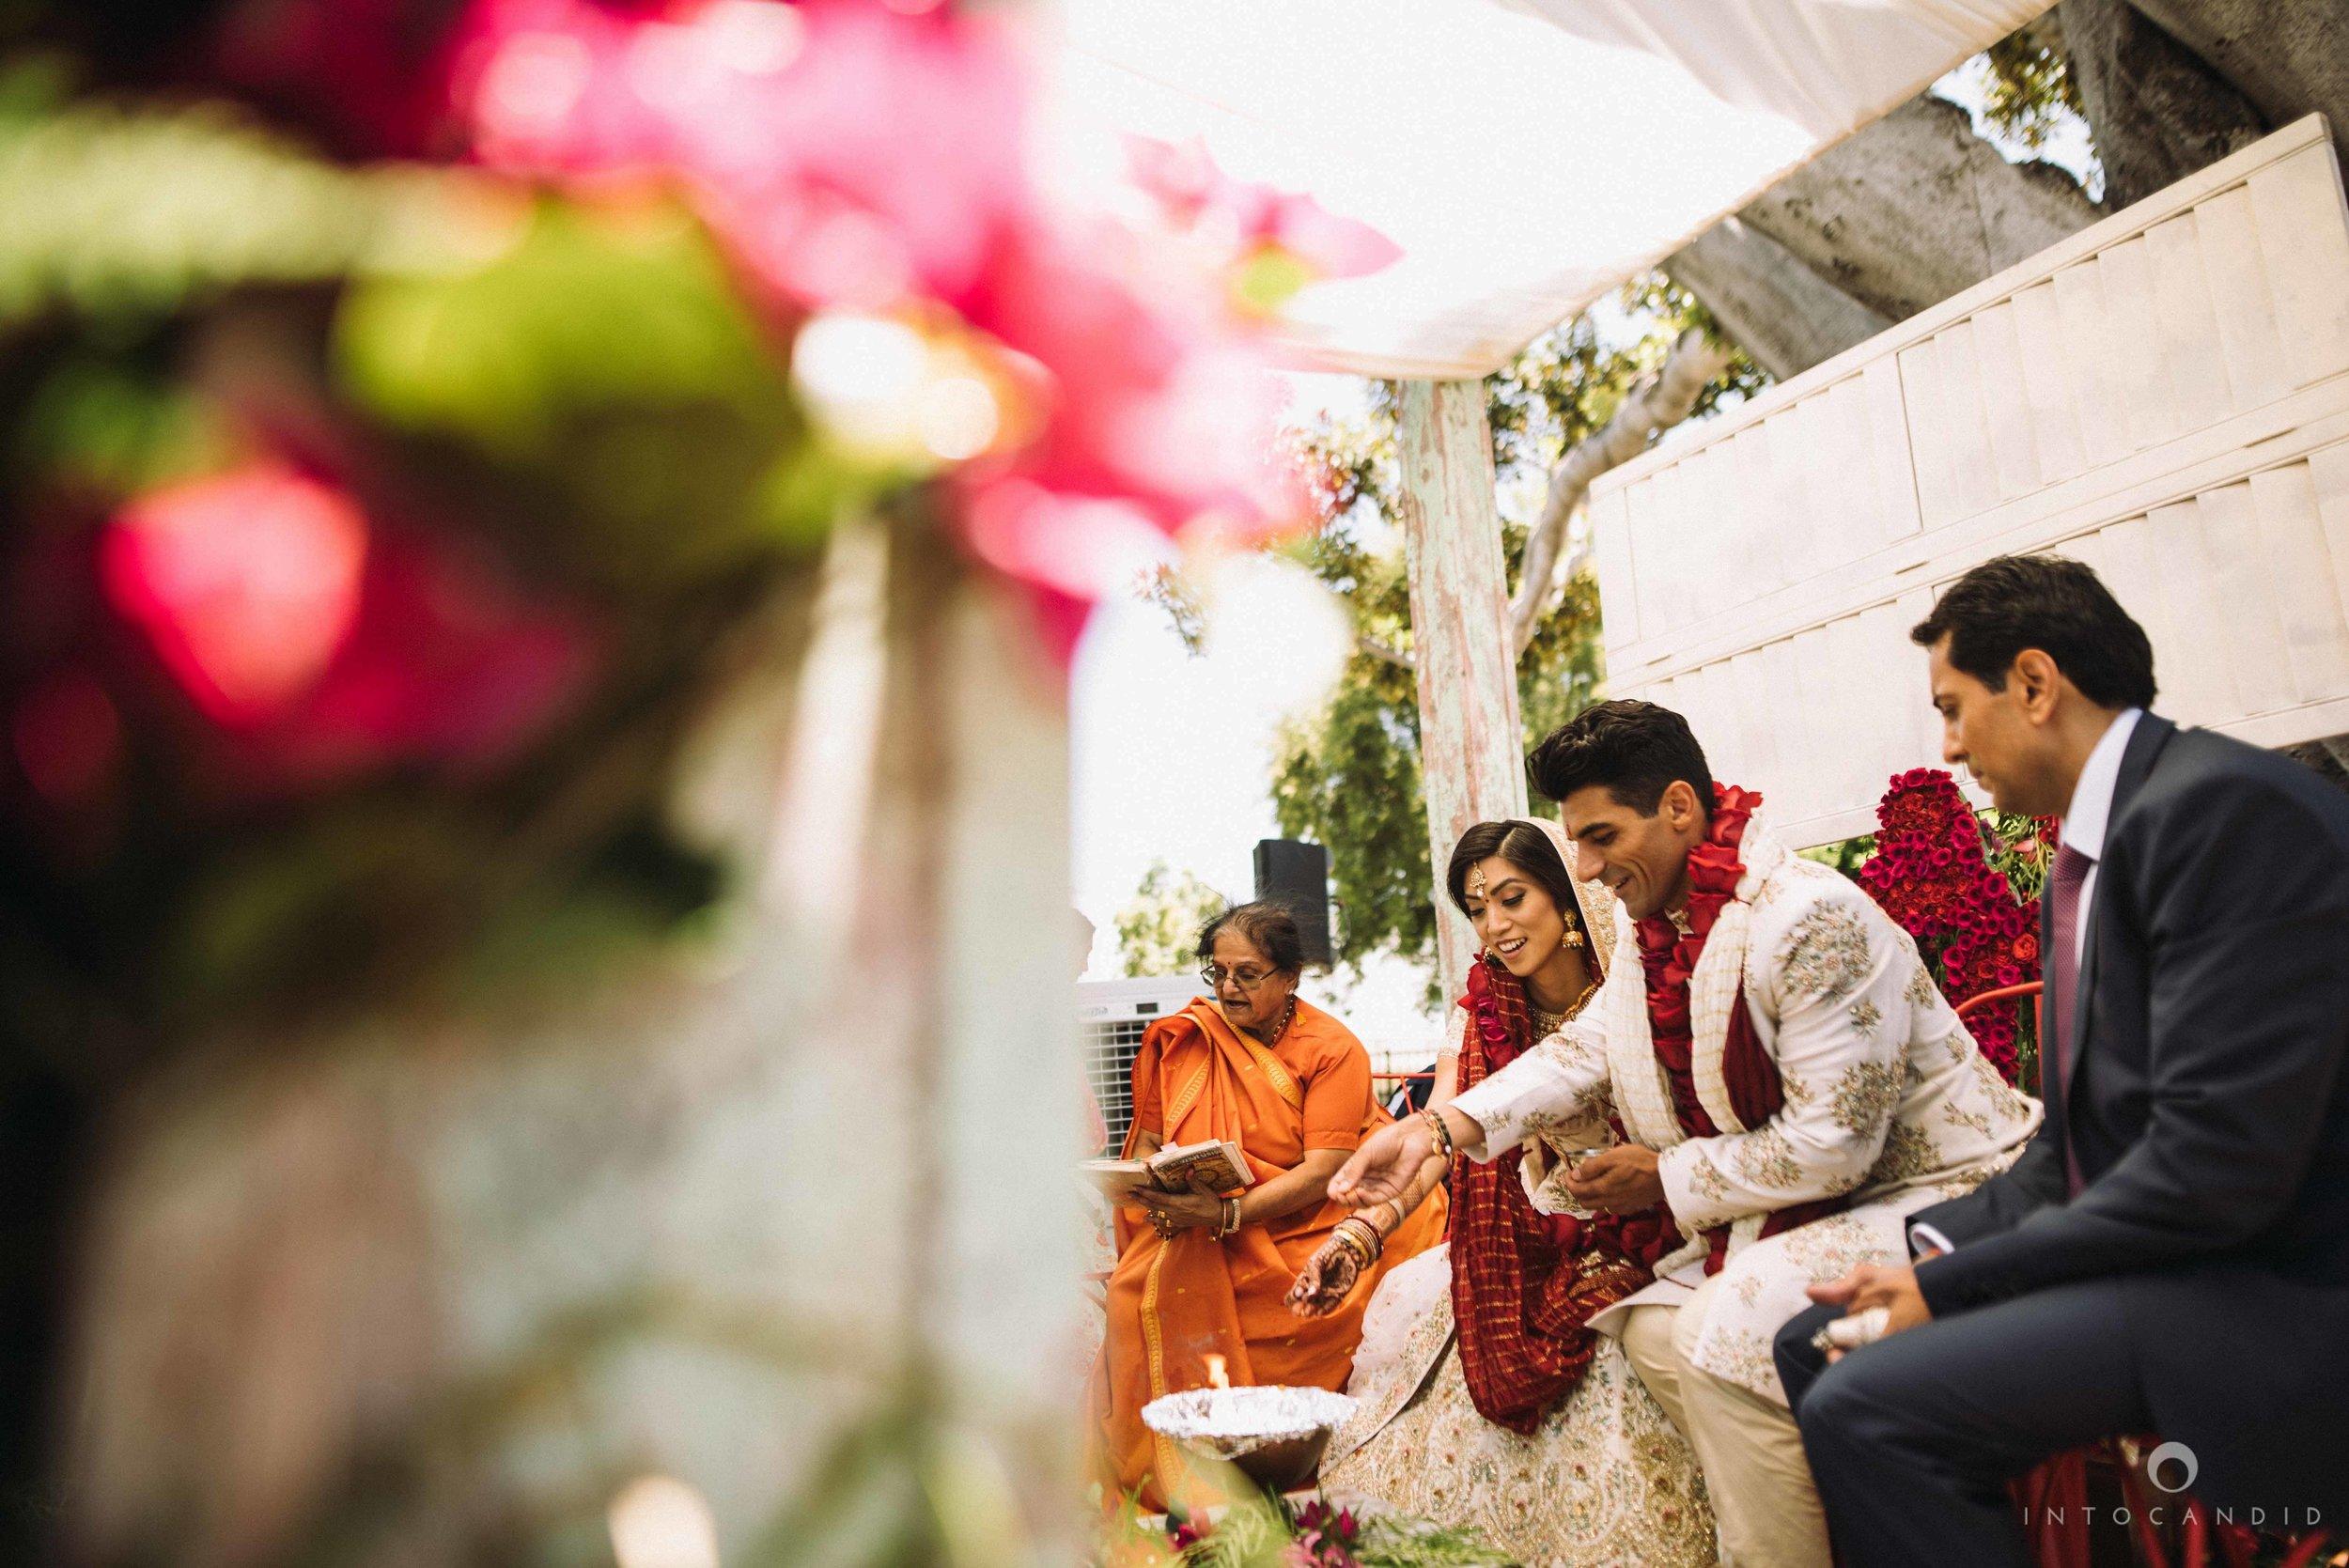 LosAngeles_Indian_Wedding_Photographer_AS_099.jpg